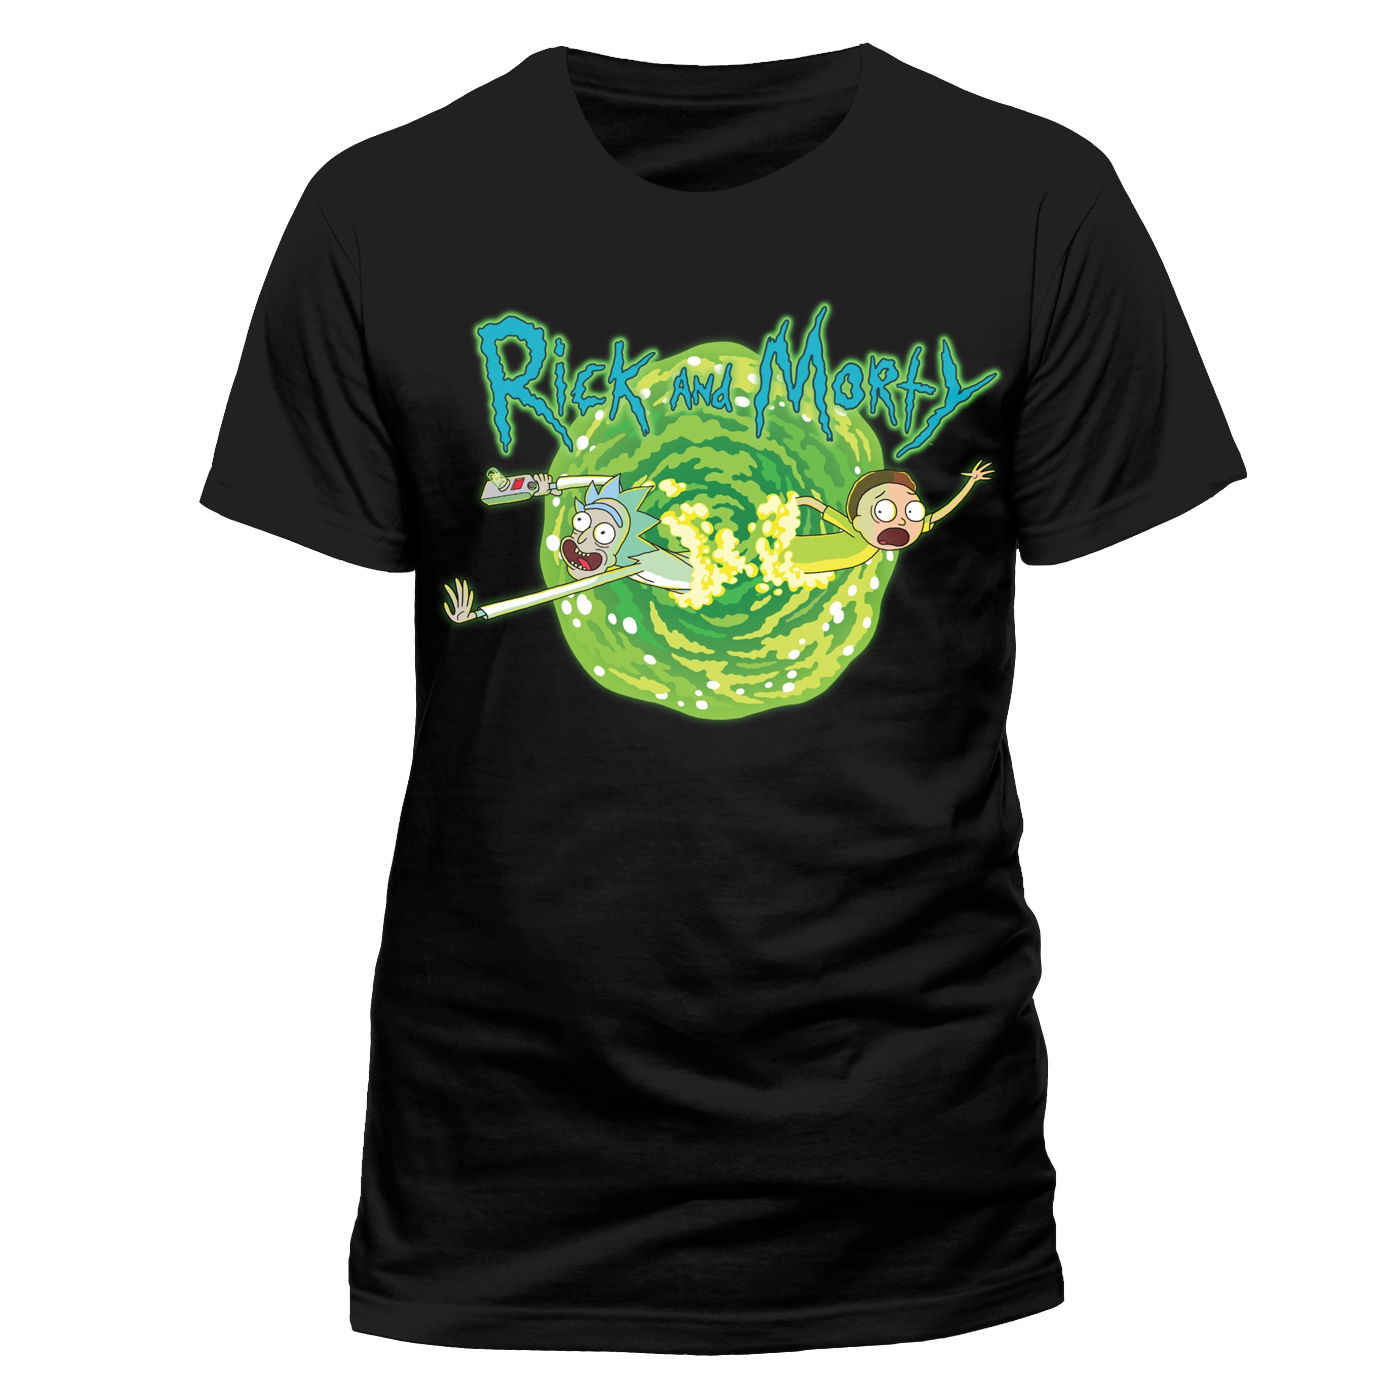 f90fbdf5e12 This super cool black crew neck tee features a bold Rick and Morty portal  printed design. If you re a fan of this hilarious sitcom or know someone  who is ...